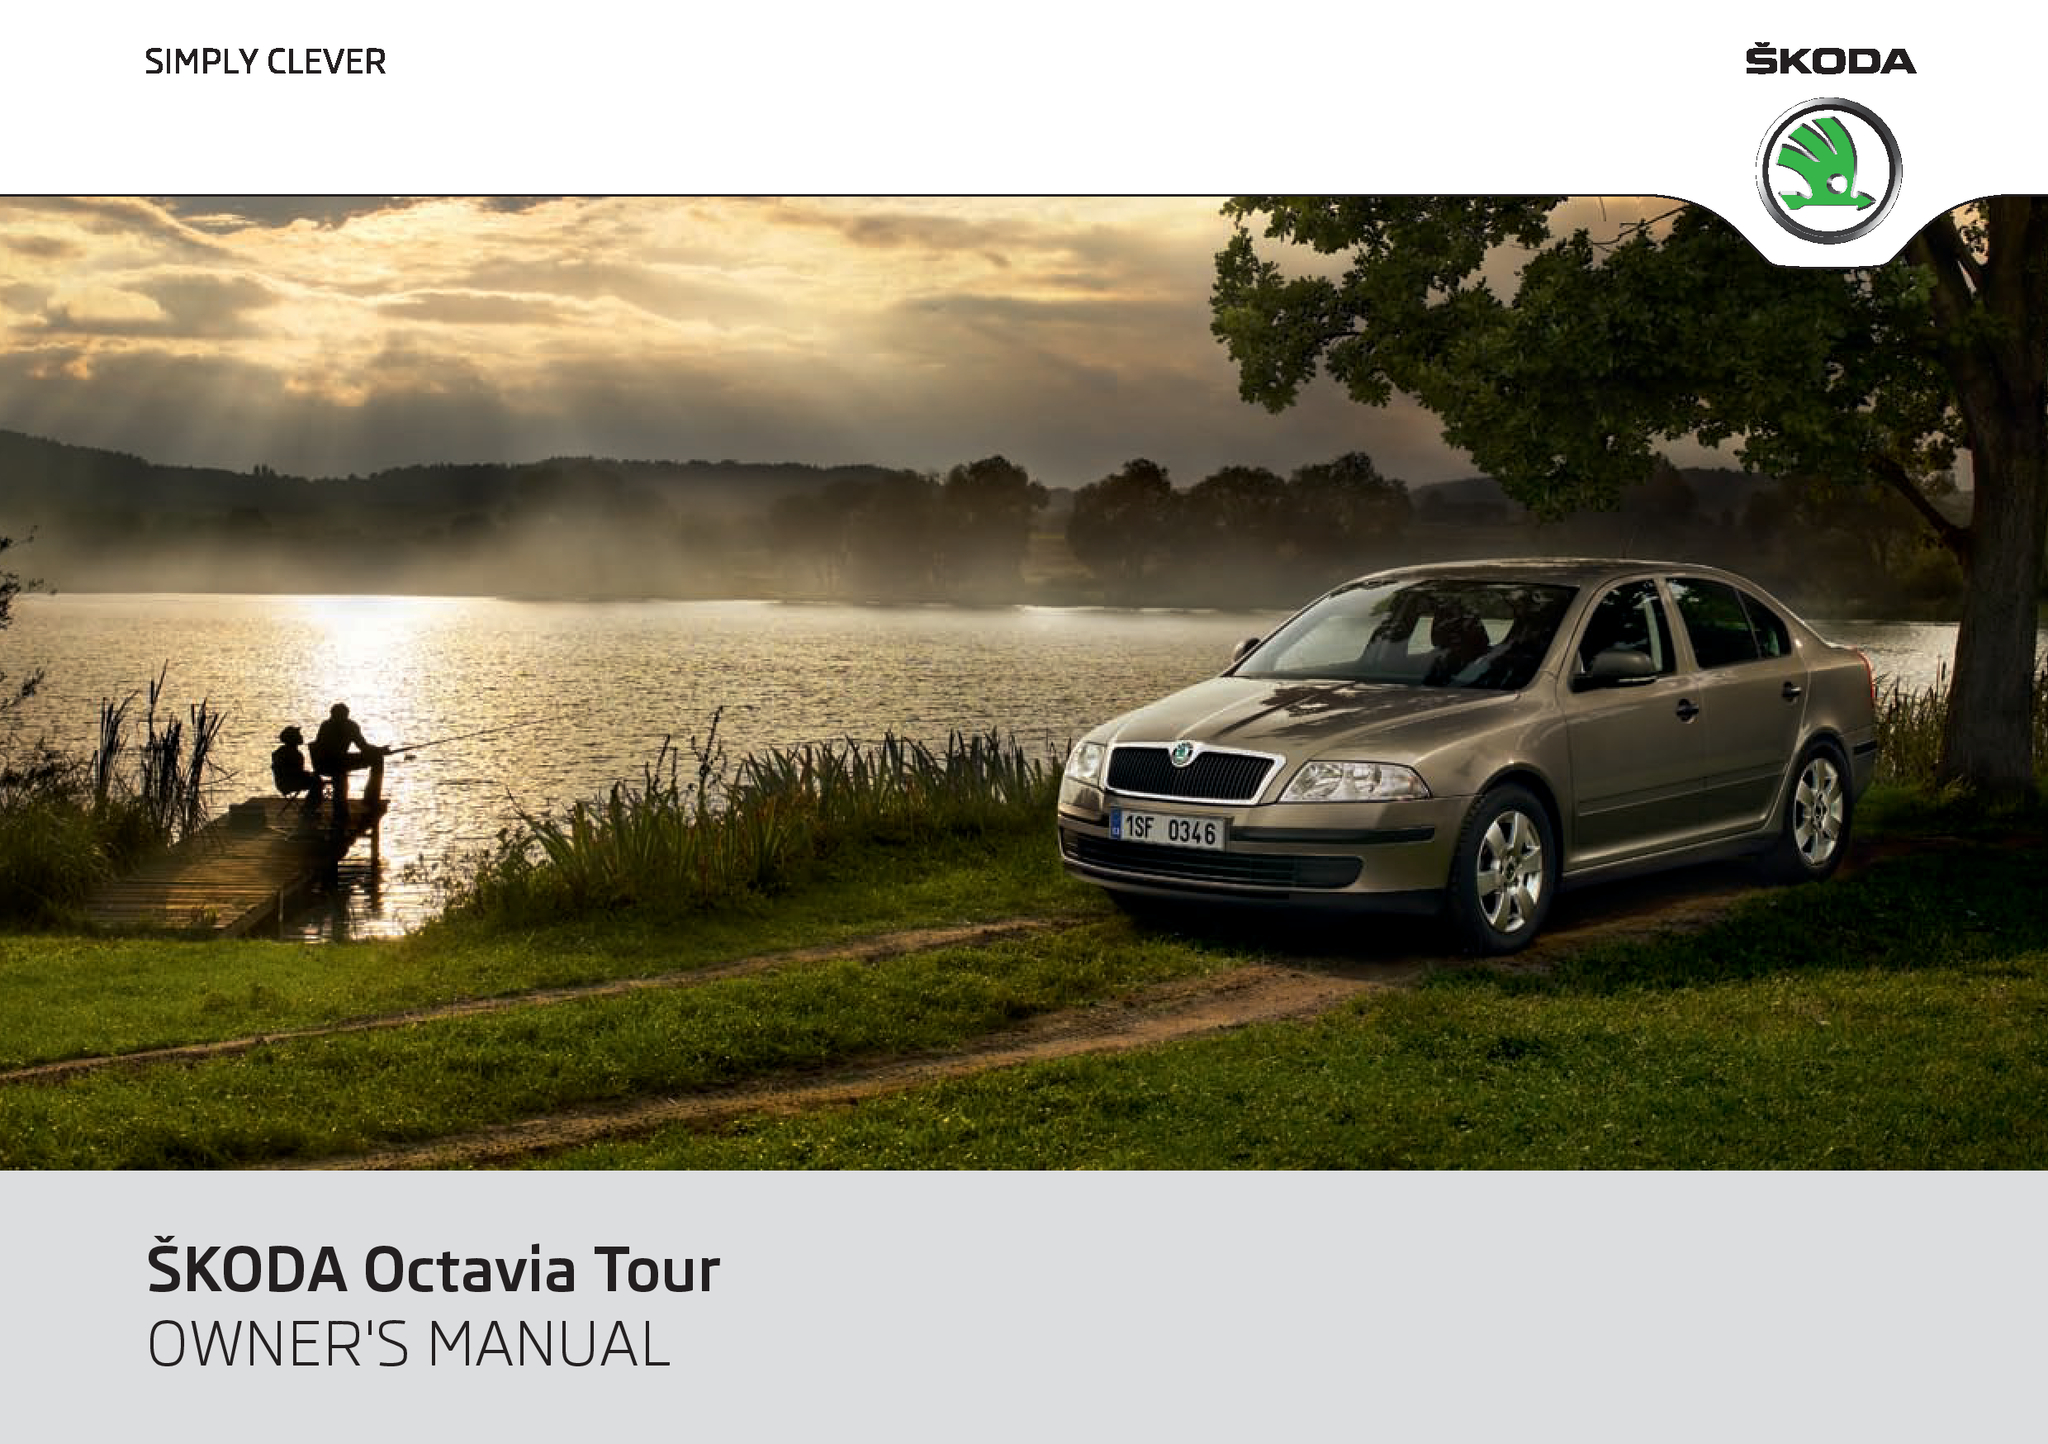 Koda Octavia Tour Since 11 2010 Owners Manuals Skoda Fabia Monte Carlo Fuse Box You The Opportunity To View Or Download And Print User Other Documents As Parts Of On Board Literature Your Car Please Choose